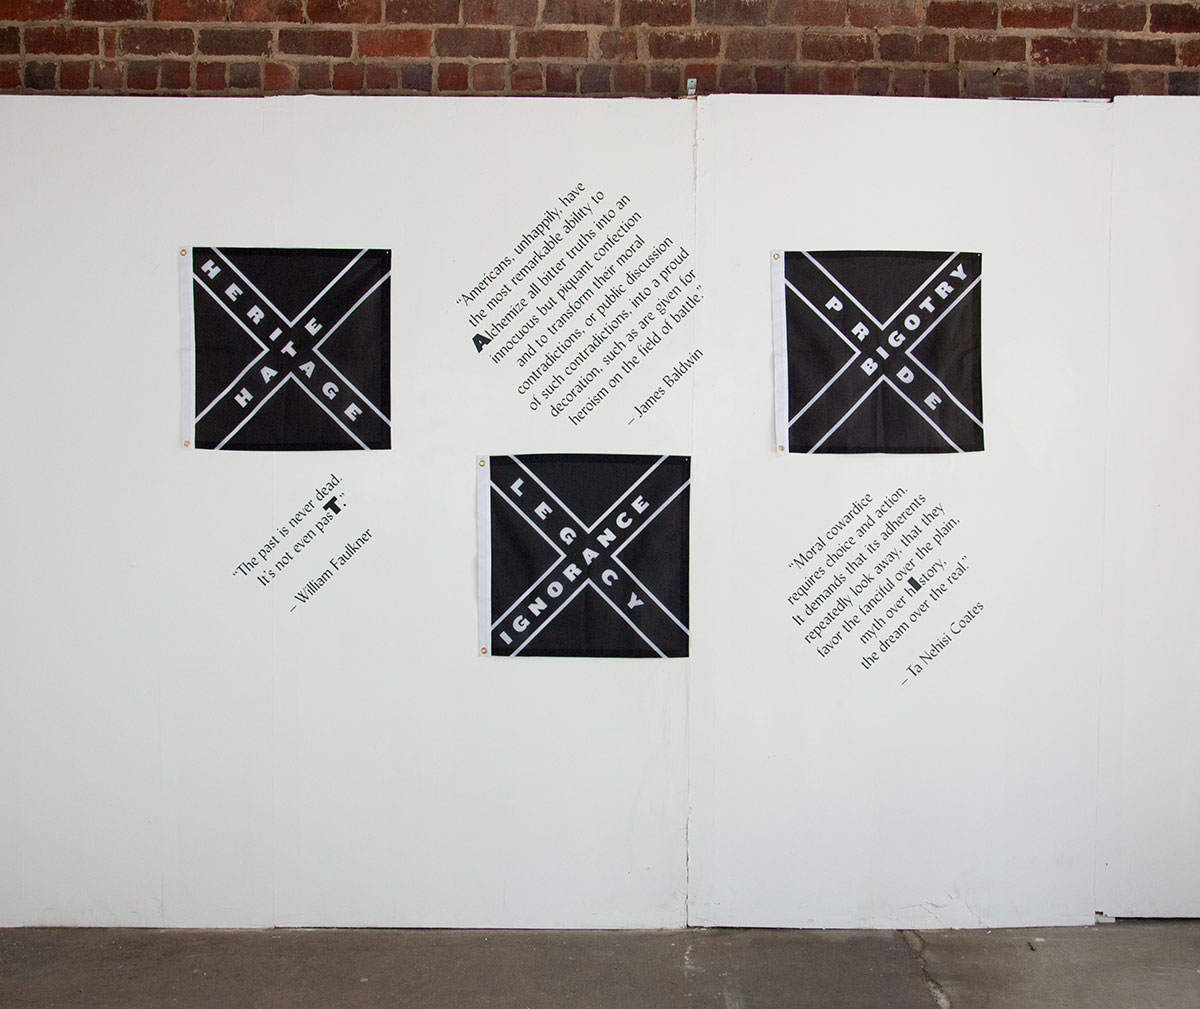 Past Presence, an installation created by Drew Sisk in response to the Charleston shooting in 2015